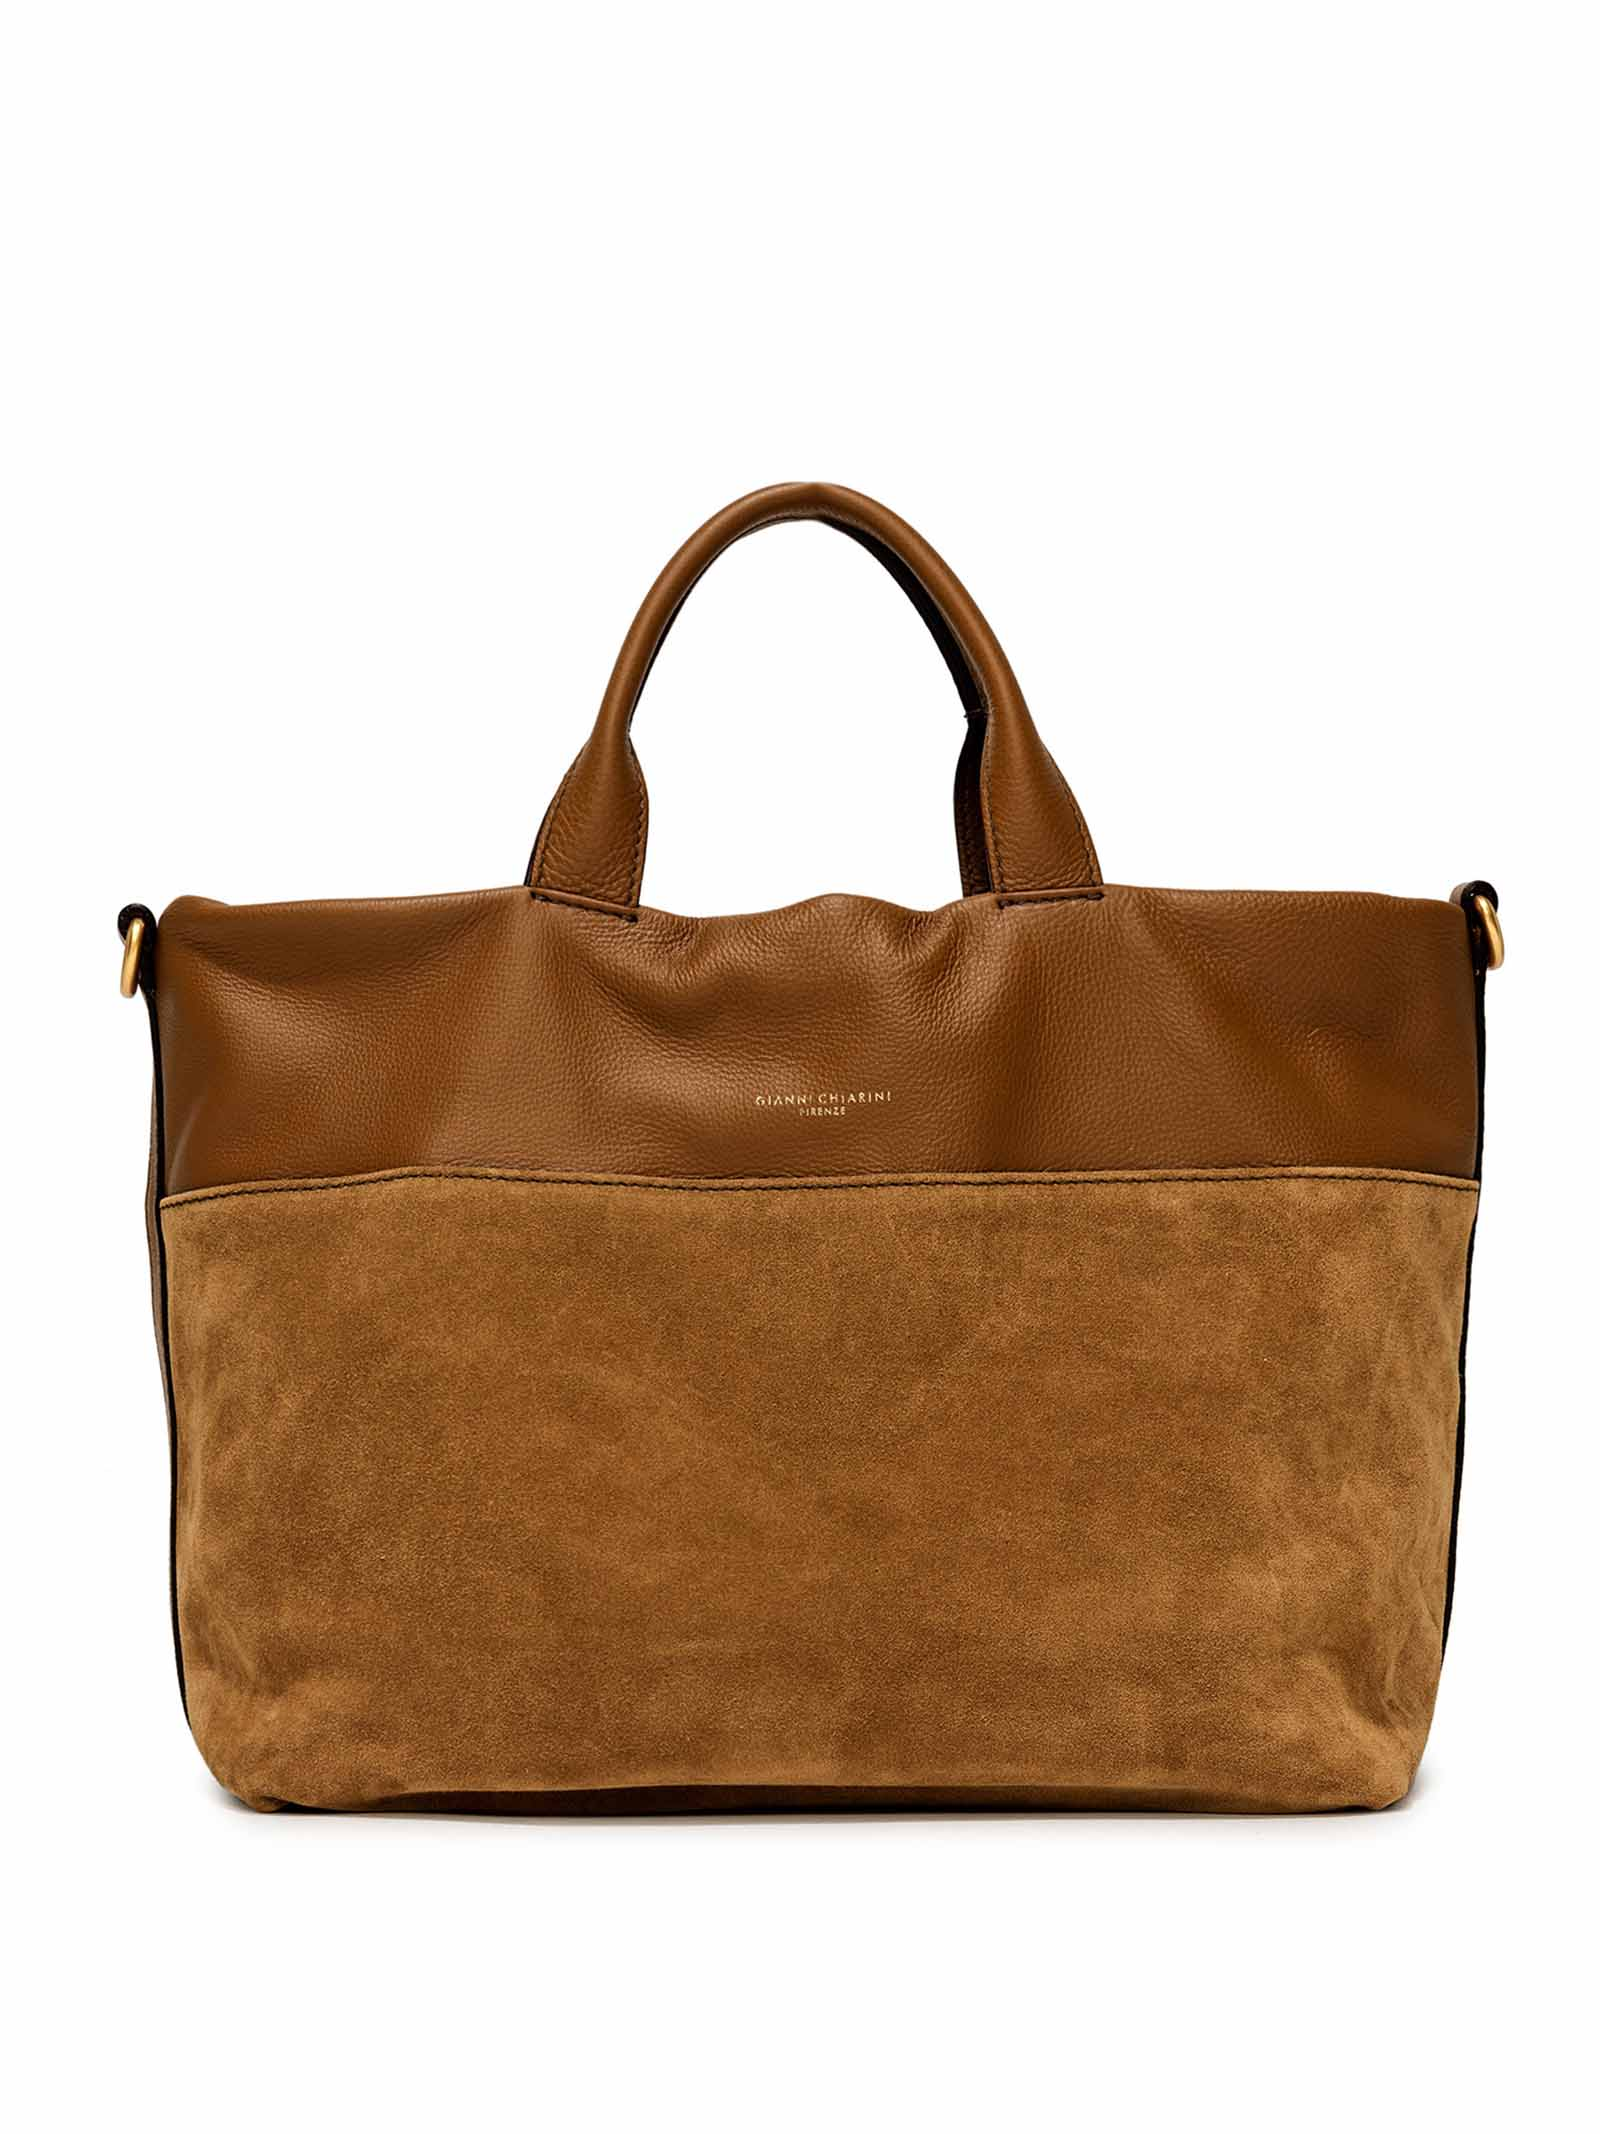 Women's Cross-body Bag Duna In Tan Leather And Color Matching Suede With Double Leather Handles And Adjustable And Detachable Cross-body leather Strap Gianni Chiarini | Bags and backpacks | BS825211130